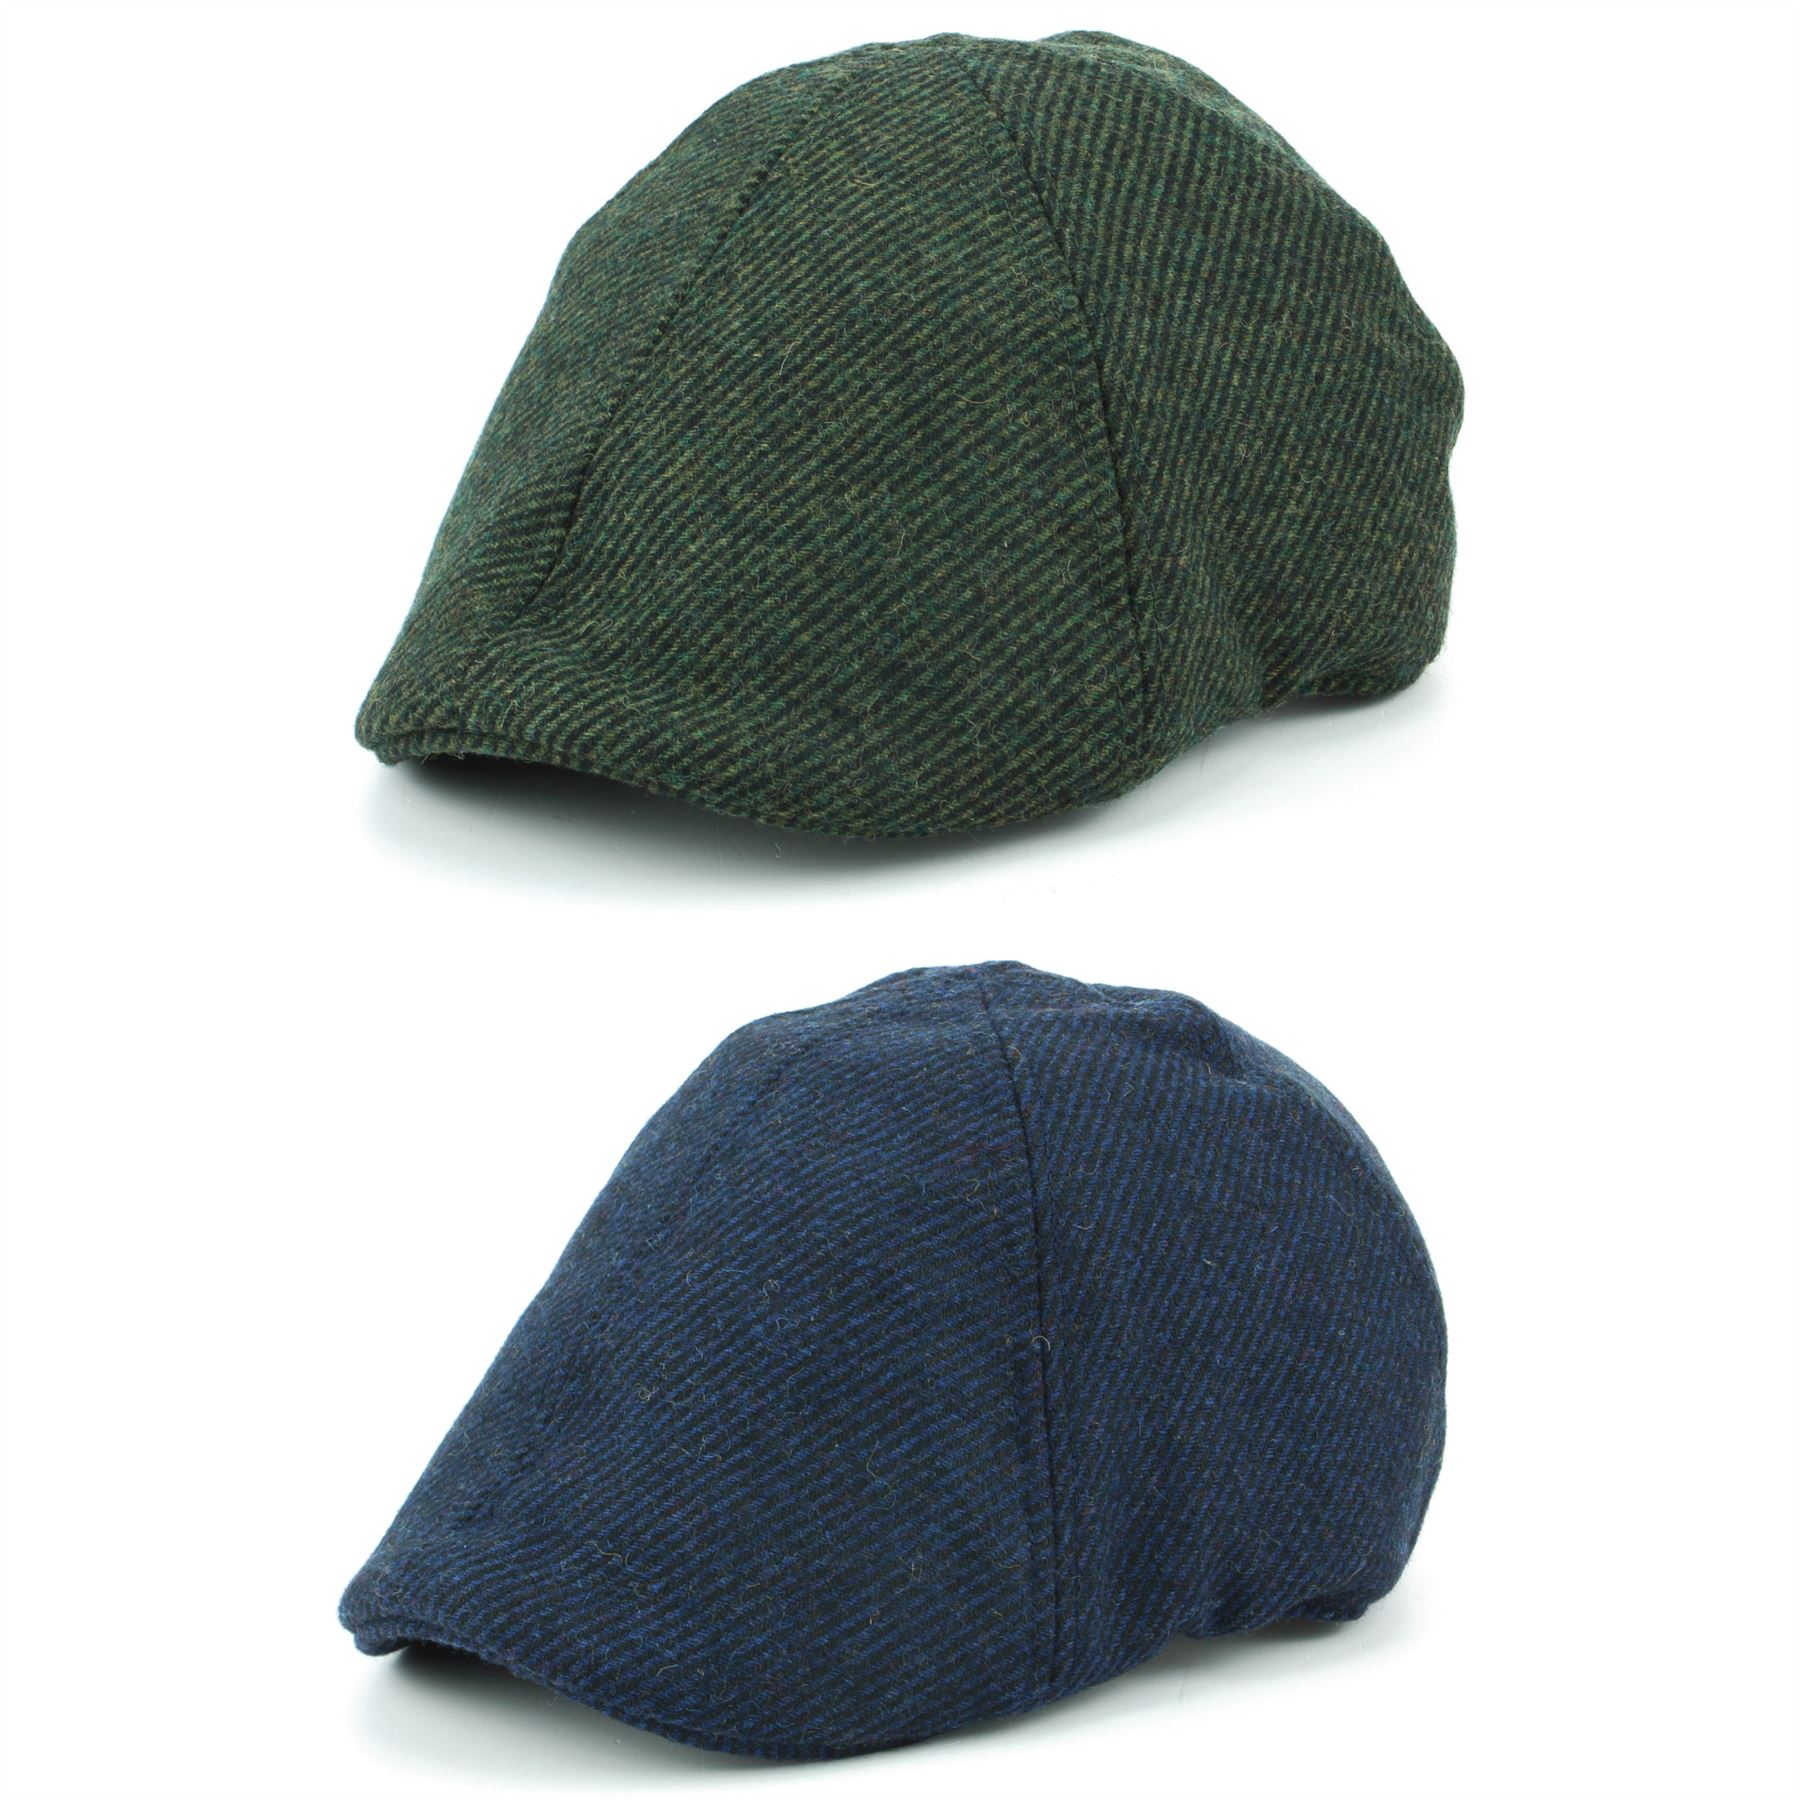 Duckbill Flat Cap Hat Wool Hawkins BLUE GREEN Driving Tweed Quilted ... a7d9fa56916